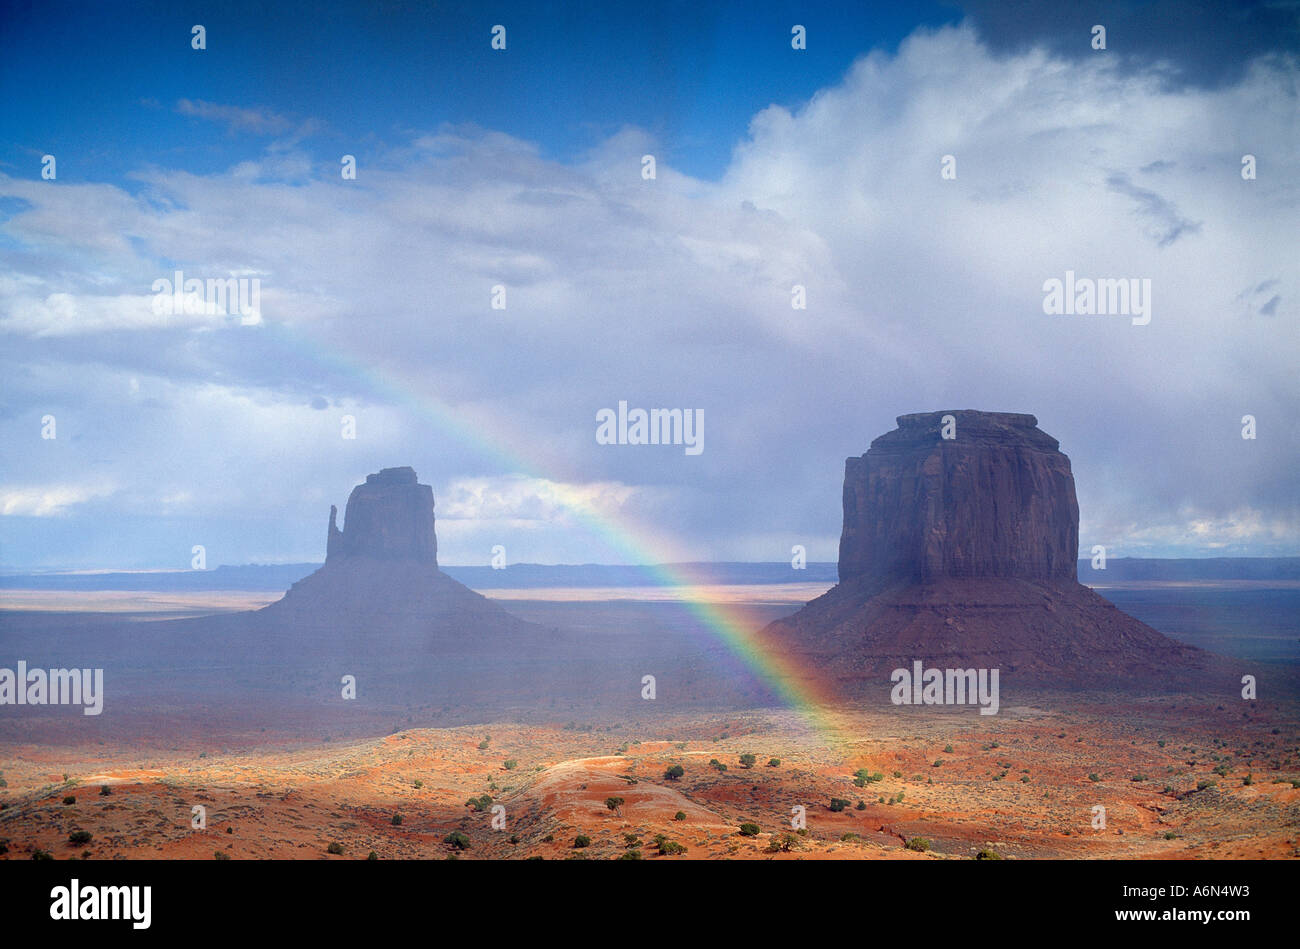 a rainbow over Monument Valley Utah USA - Stock Image